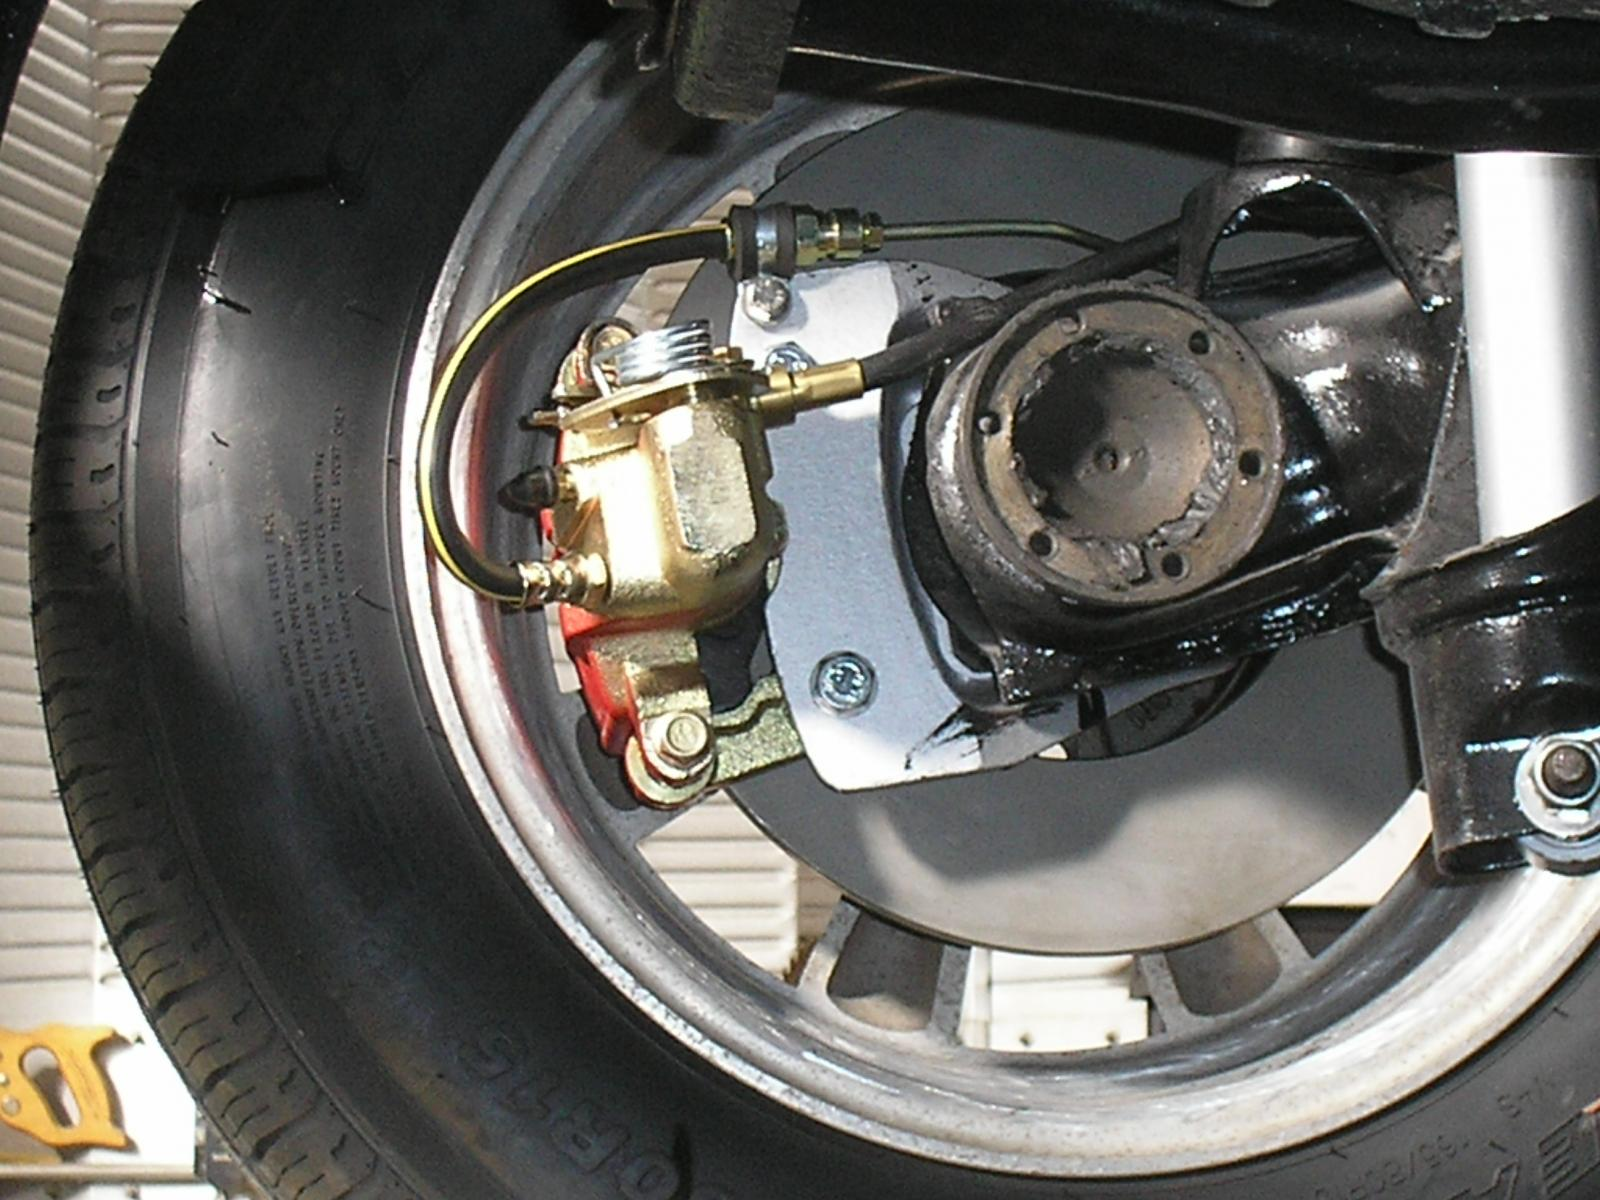 Ghia View Topic Cable Routing For Rear Disc Brakes Brake System Braking Business Photo Gallery Image May Have Been Reduced In Size Click To Fullscreen